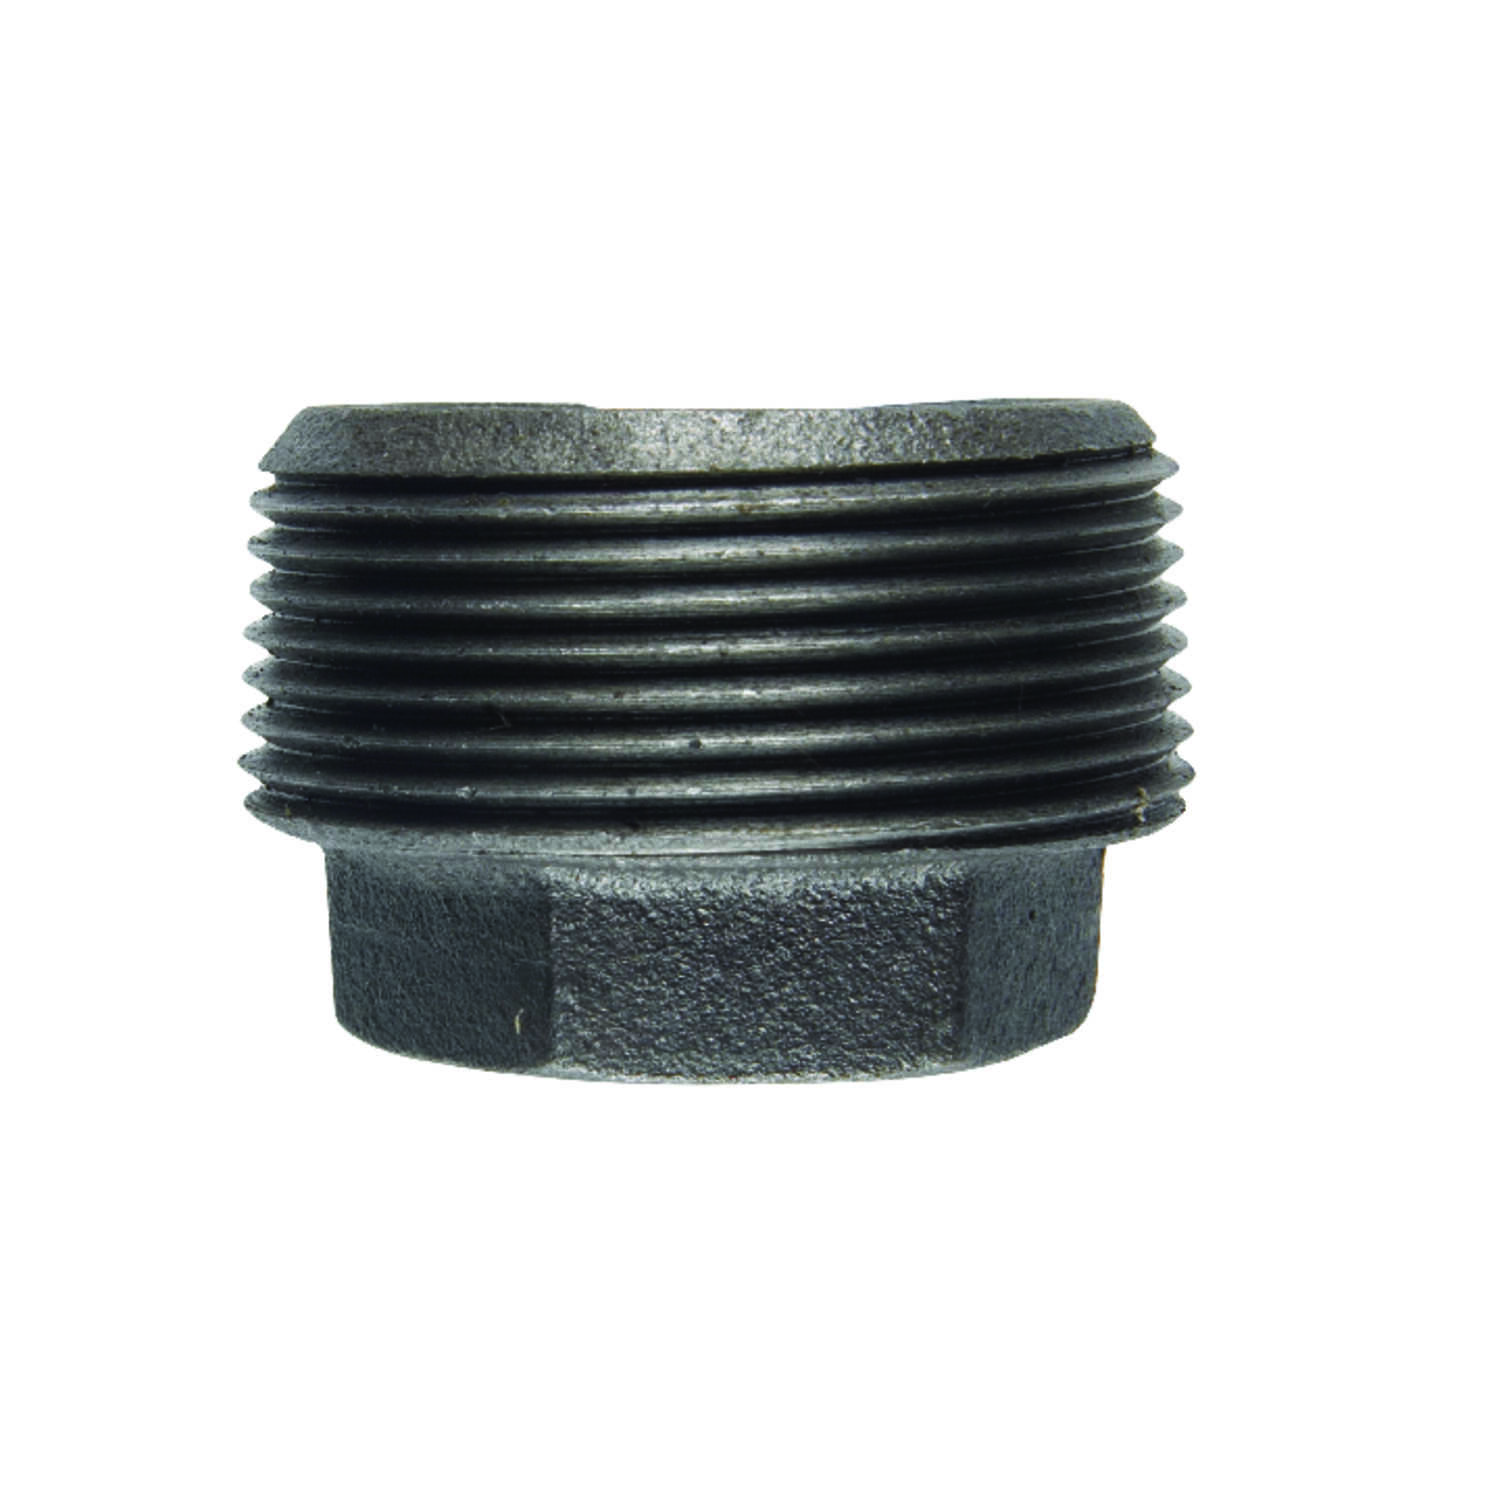 B & K  1 in. MPT   x 1/2 in. Dia. FPT  Black  Malleable Iron  Hex Bushing